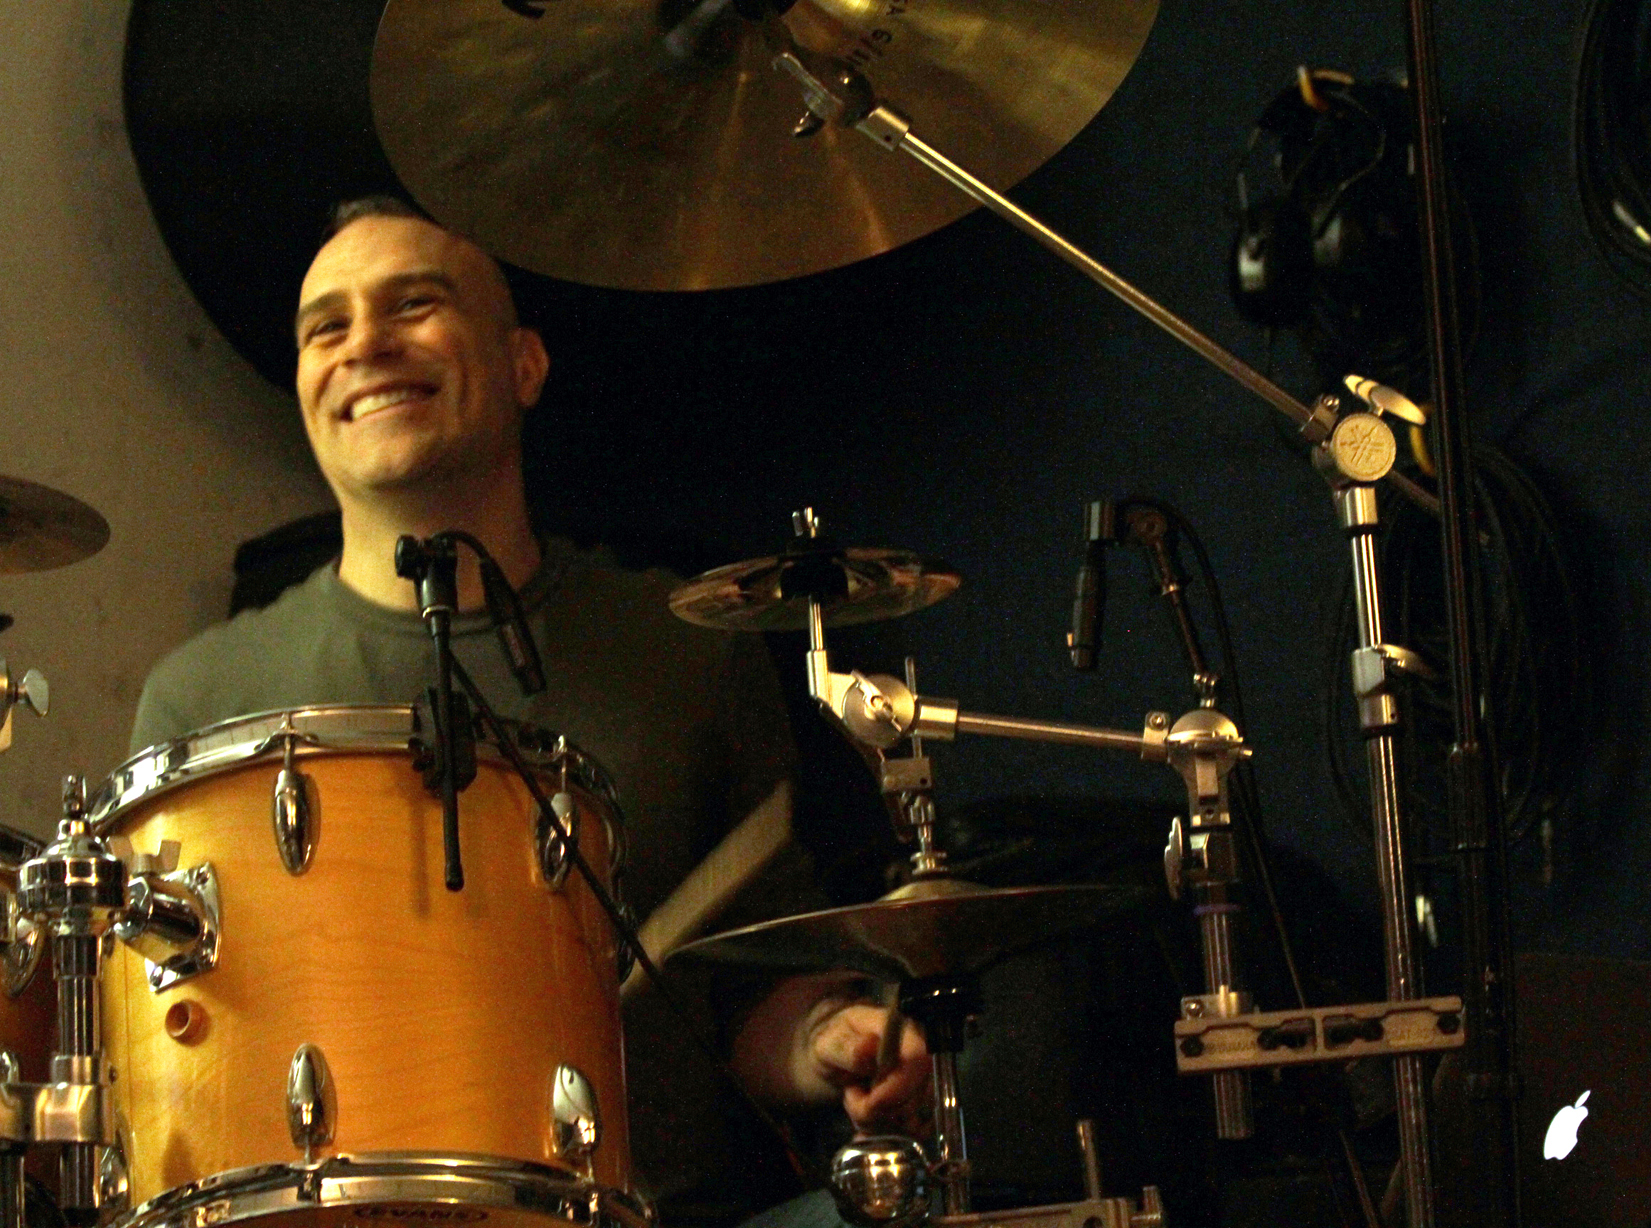 Drummer Chris DeRosa